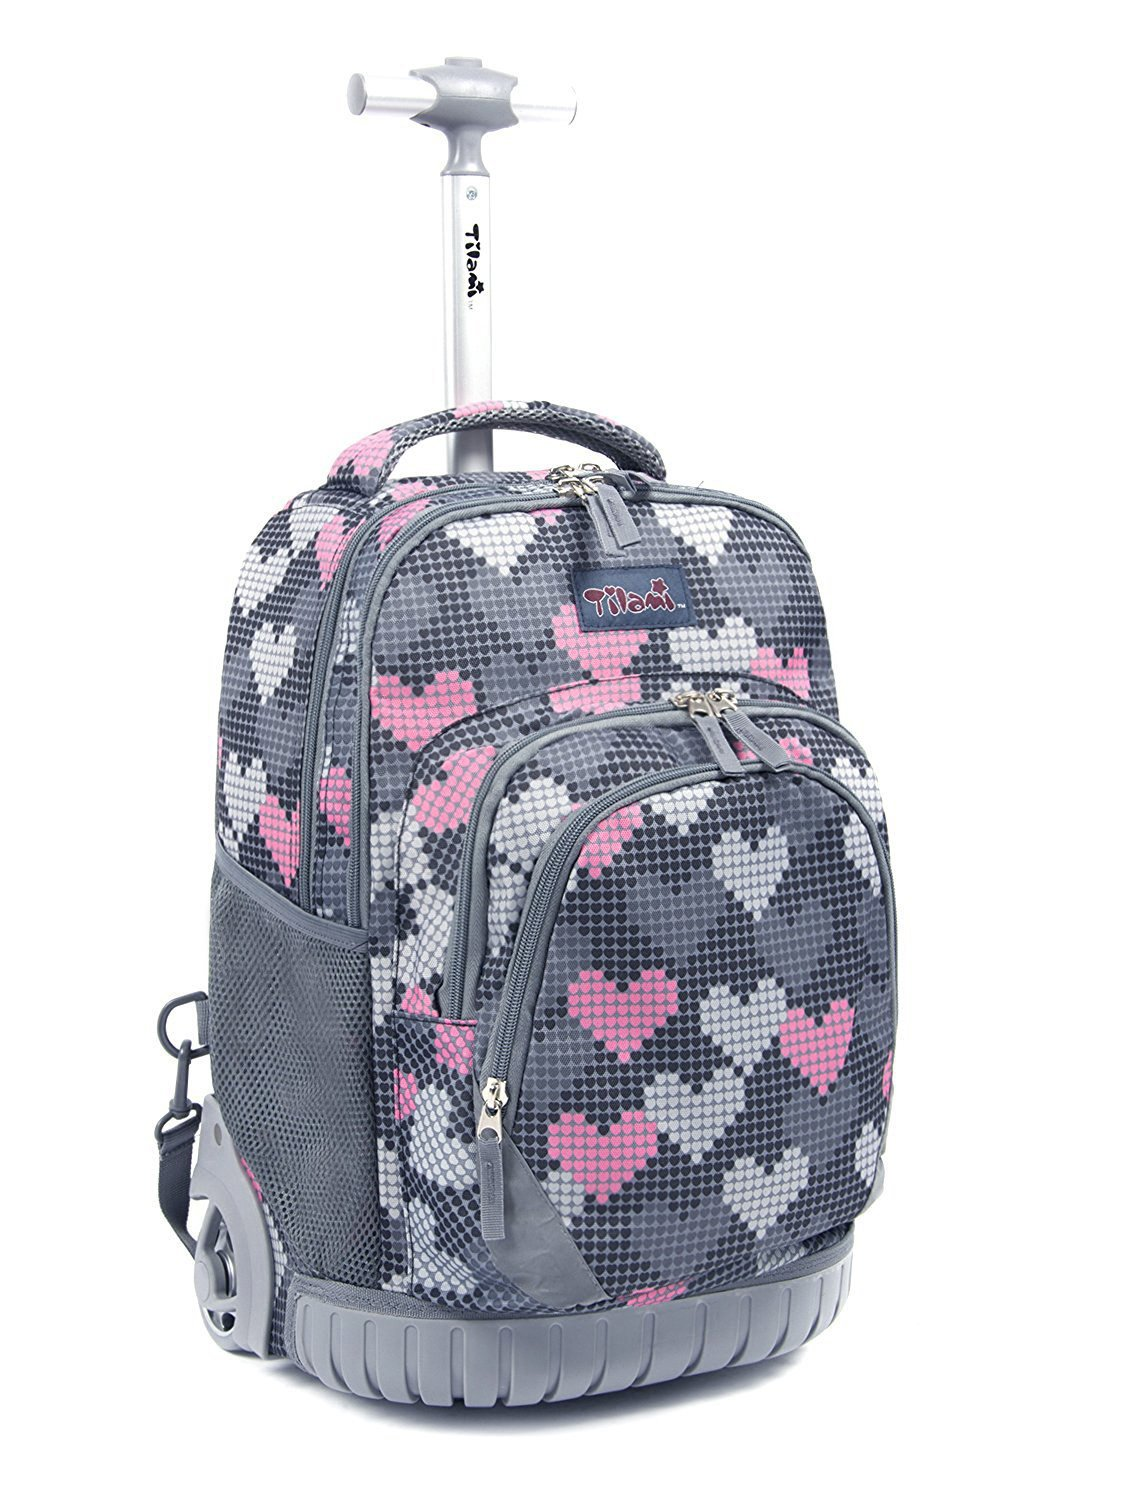 02e14e37d745 Galleon - Tilami Rolling Backpack Armor Luggage School Travel Book Laptop  18 Inch Multifunction Wheeled Backpack For Kids And Students (Falling Love  1)